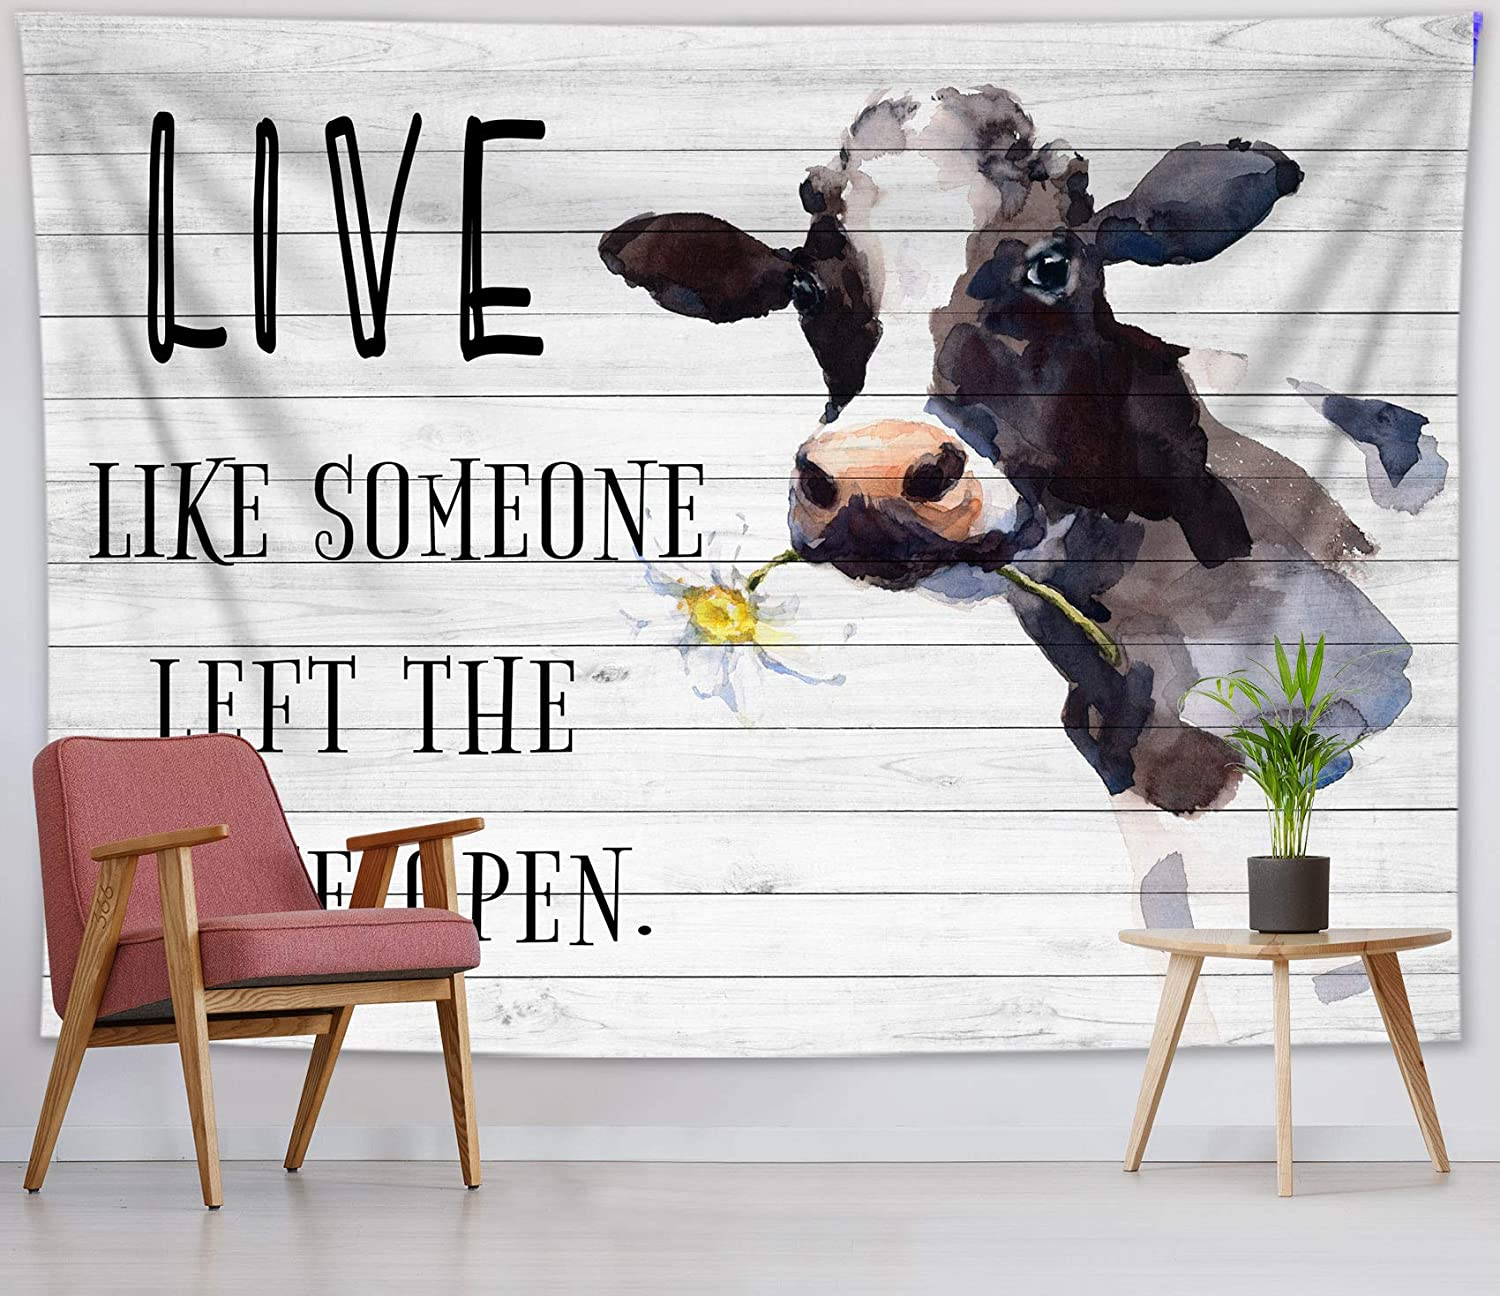 HVEST Farm Animal Tapestry Inspirational Quotes Tapestry Watercolor Cow with Daisy Flower Tapestries Funny Words Tapestry for Living Room Bedroom Dorm Teen Indie Room Decor, 60x40 Inches